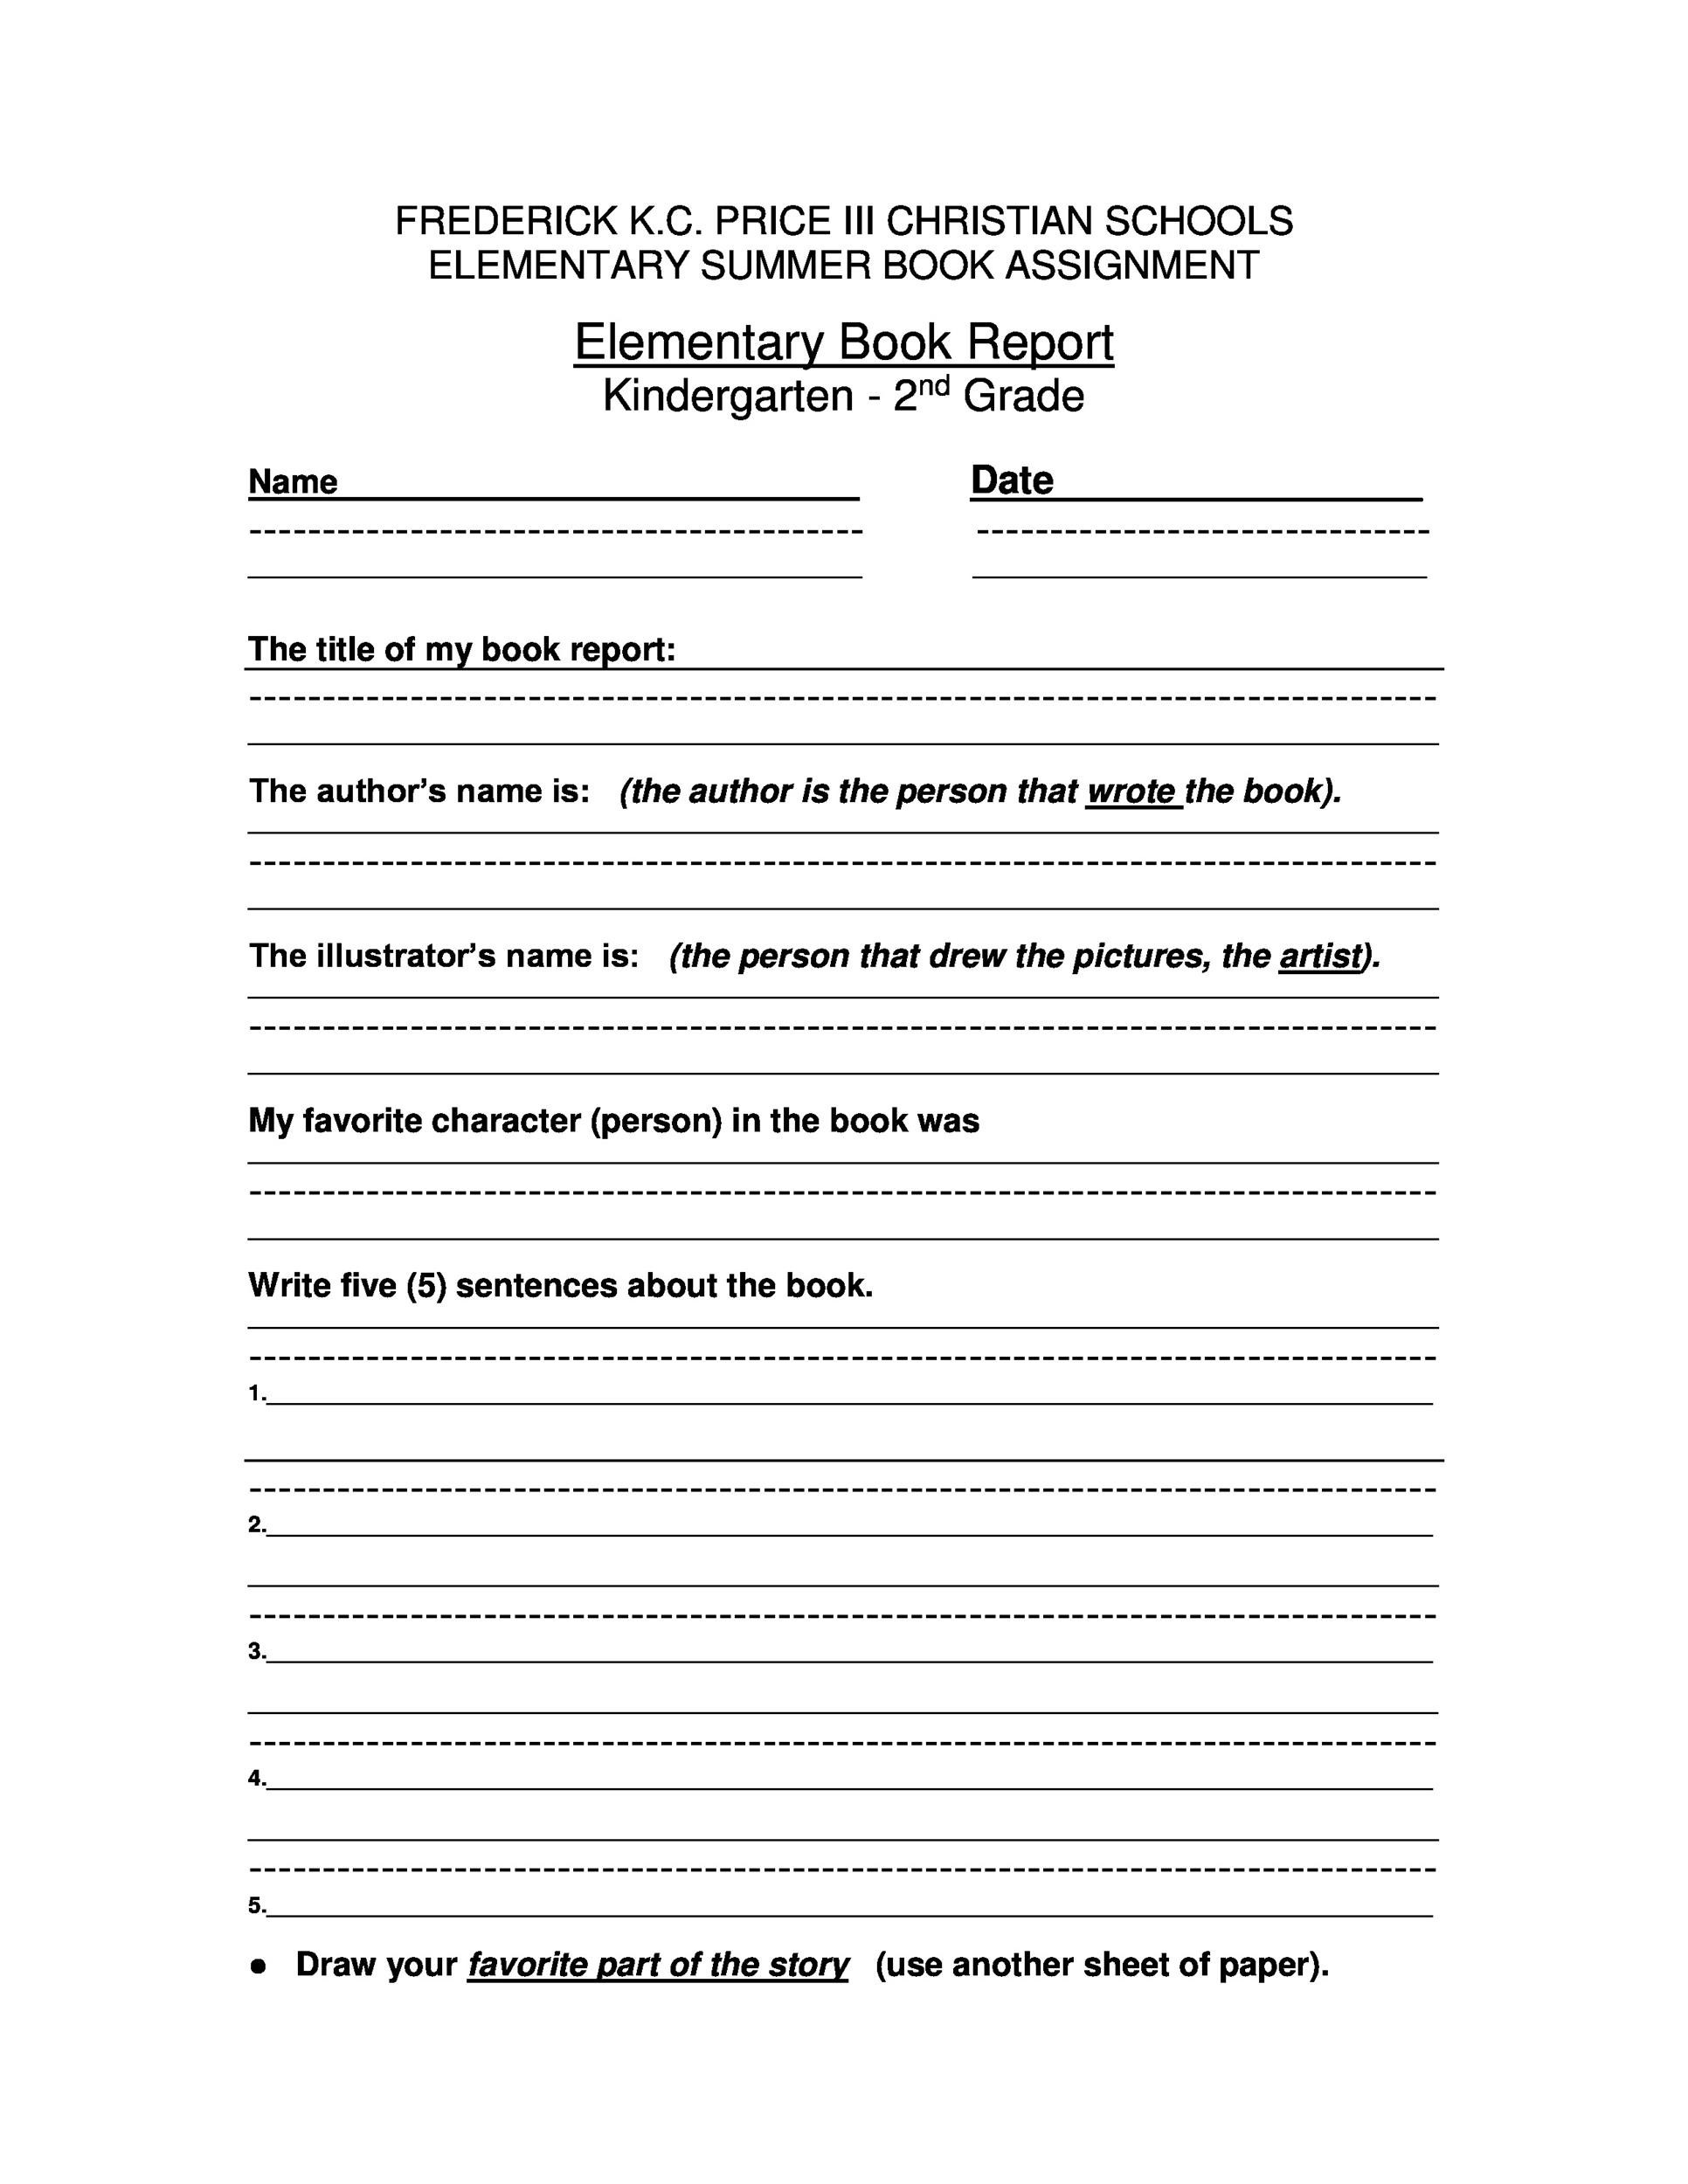 Newspaper Book Report Template from templatelab.com